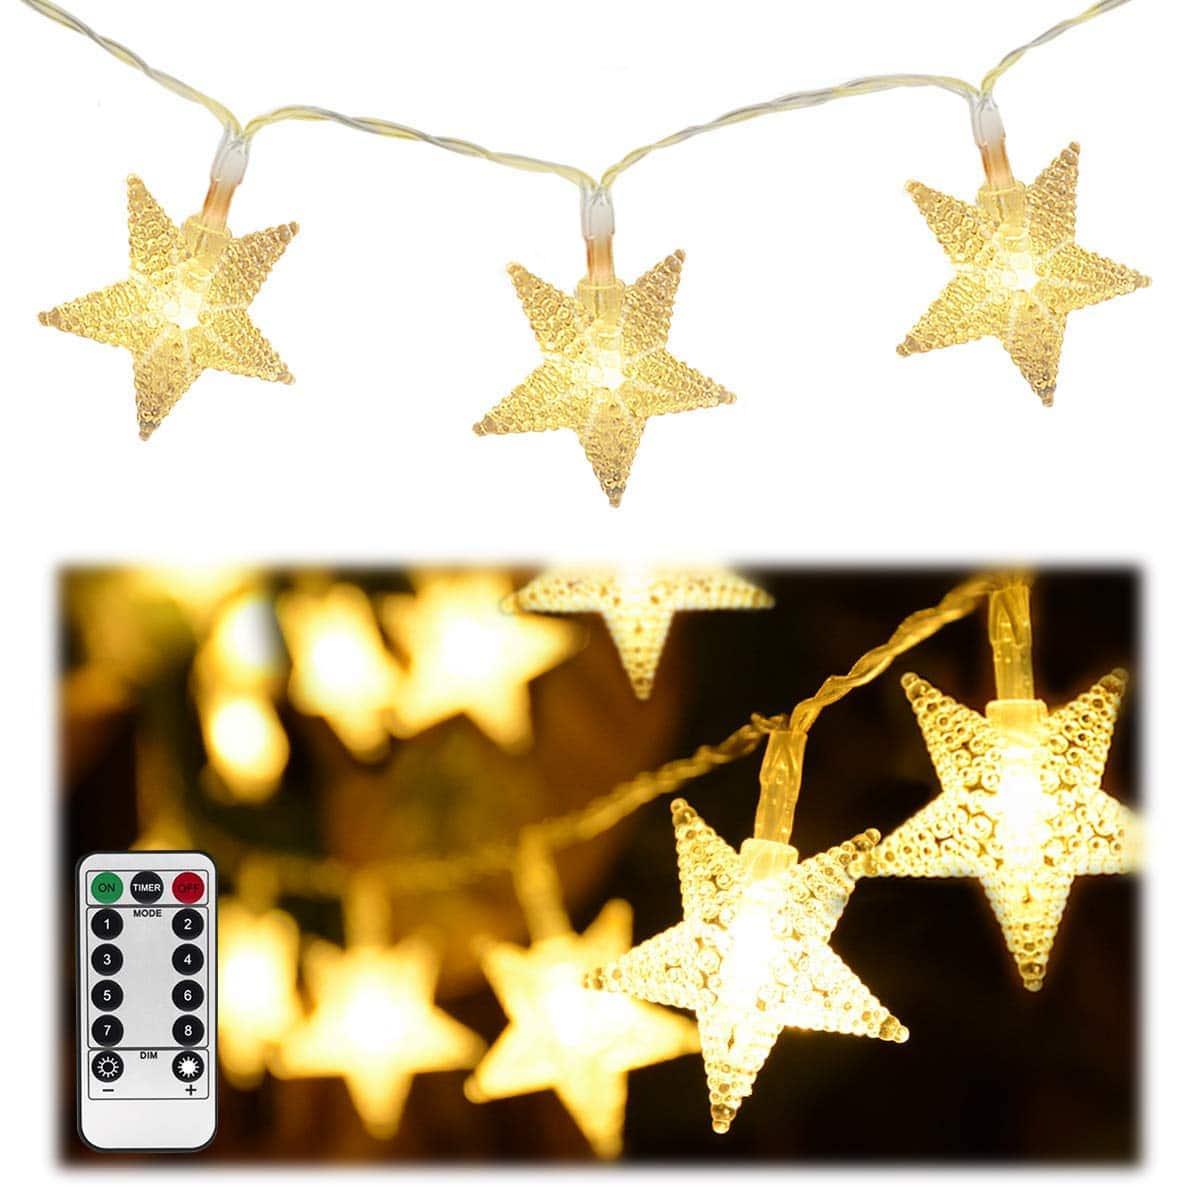 Homeleo 50 LED Warm White LED Twinkle Star Fairy Lights w/Remote Control $6.99 AC @Amazon